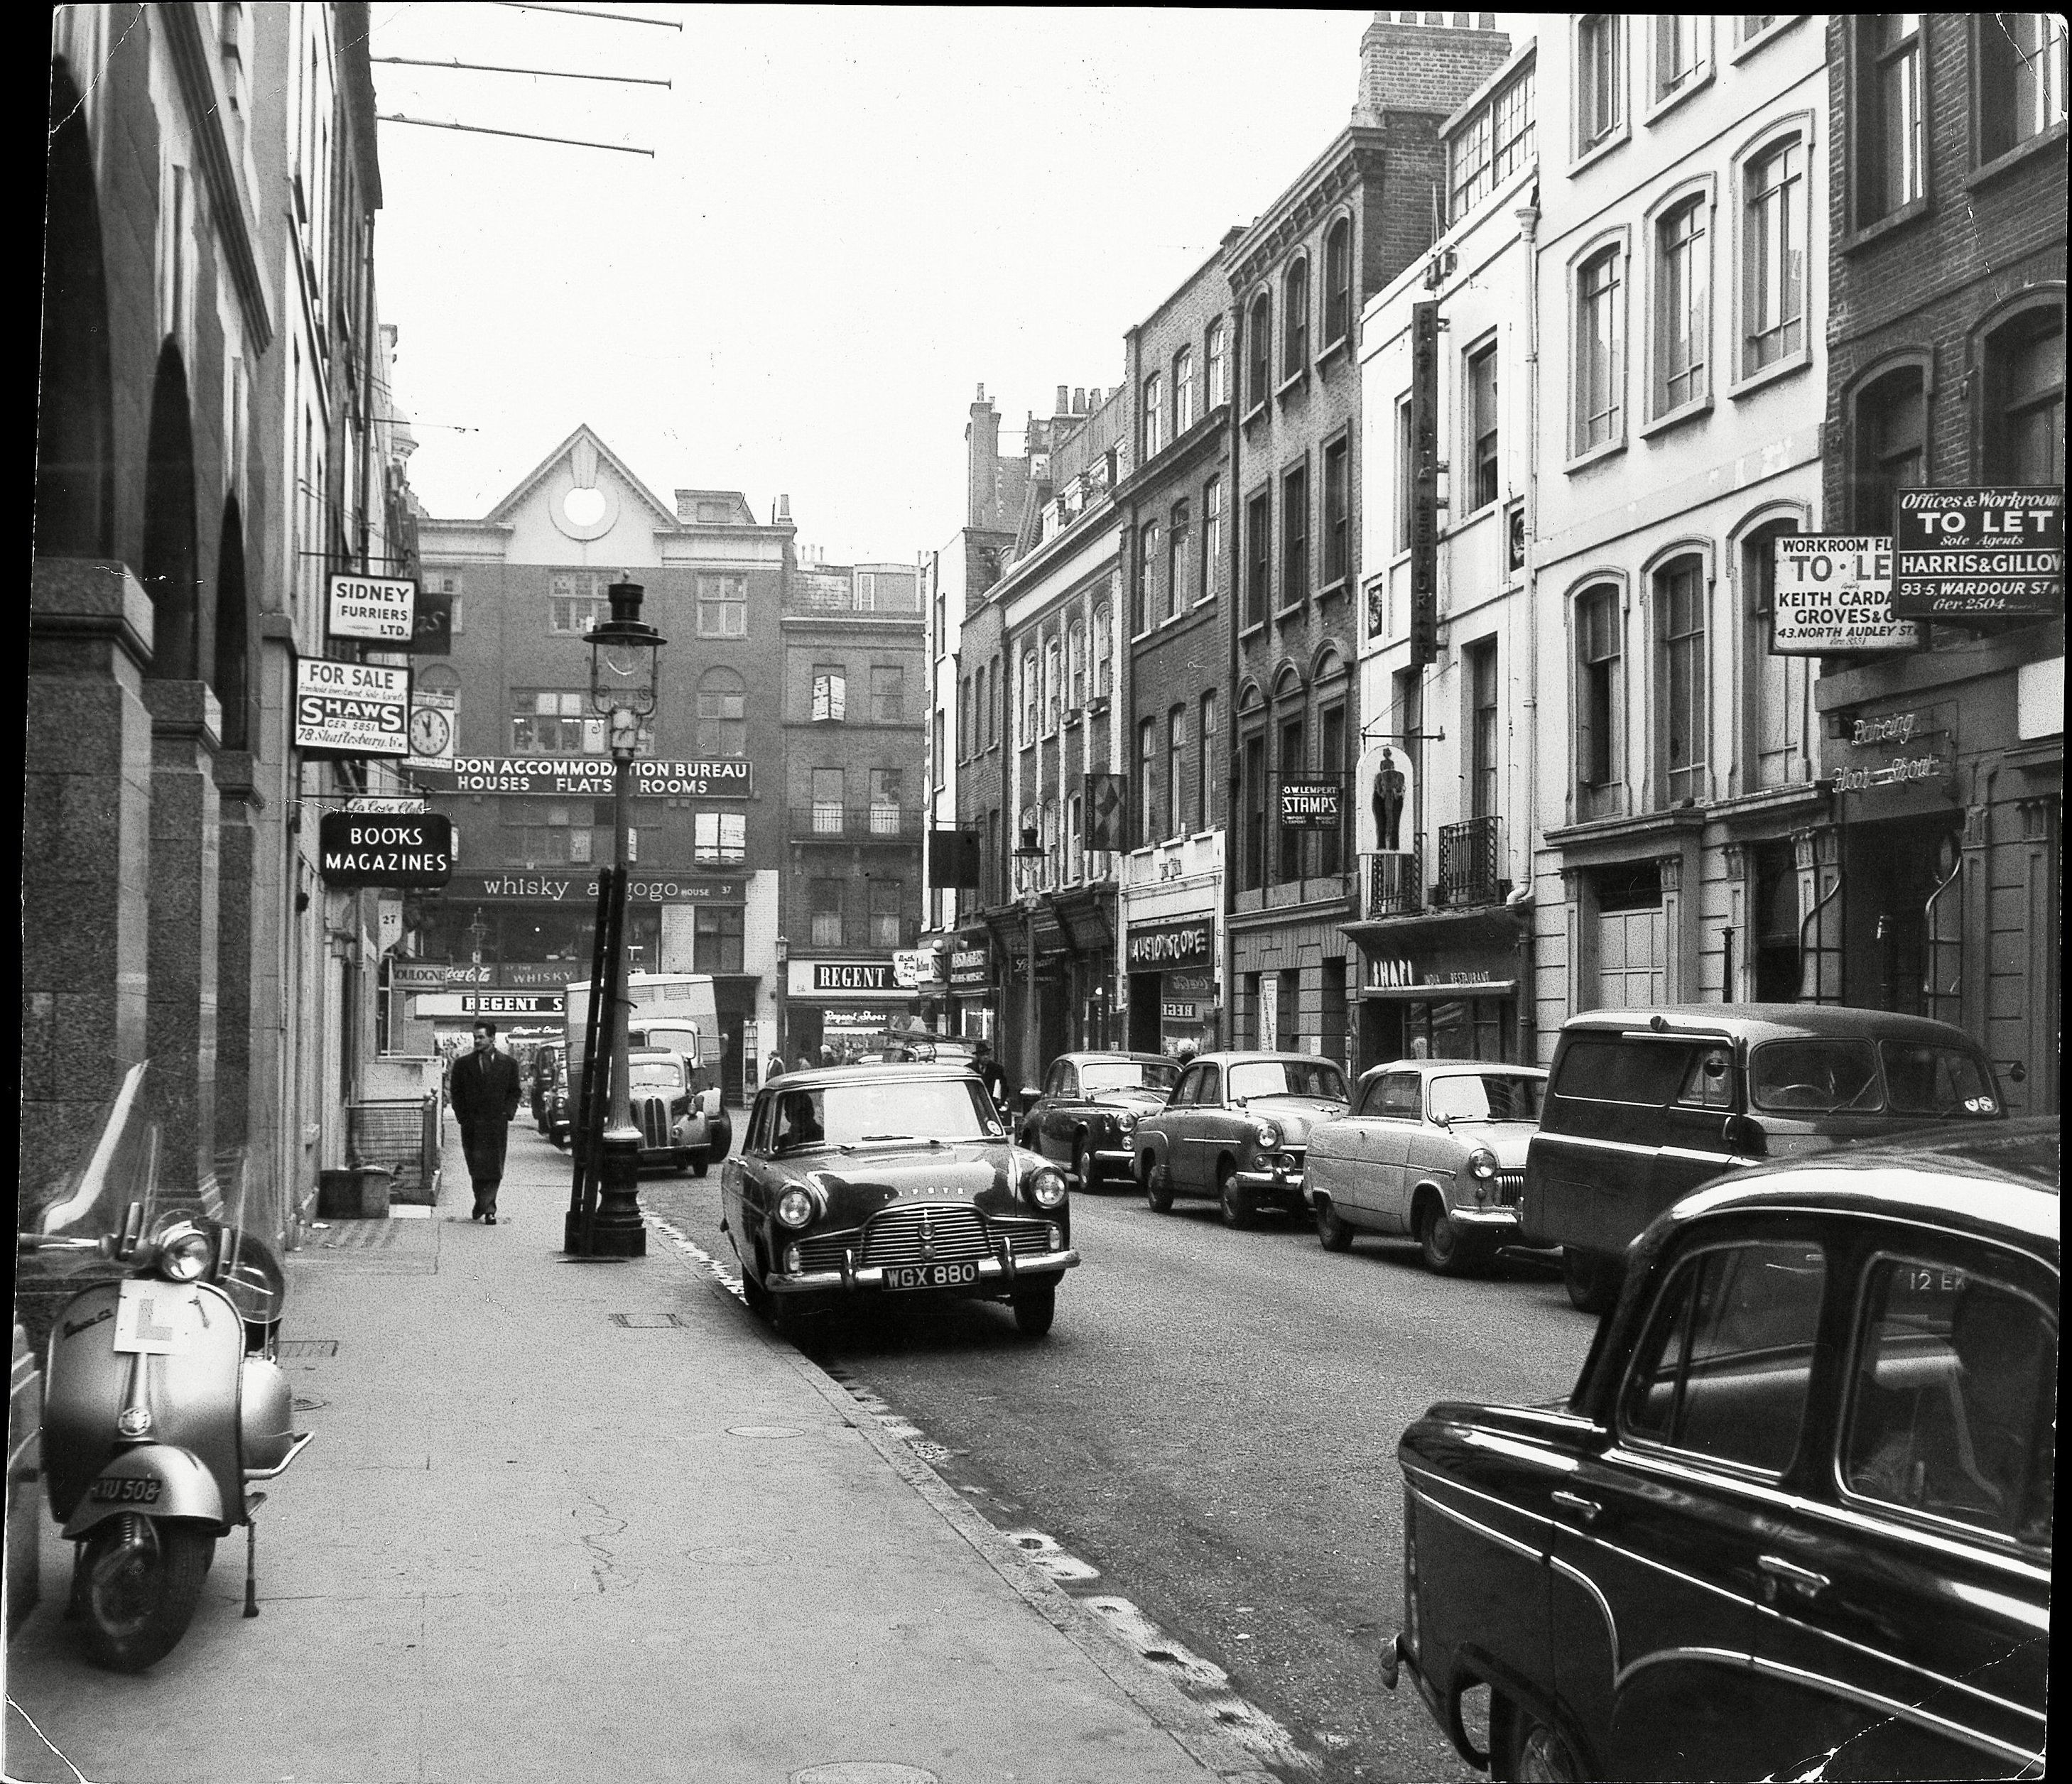 Metered Parking introduced in Gerrard Street. 3rd December 1959. Photo by Evening News/REX/Shutterstock